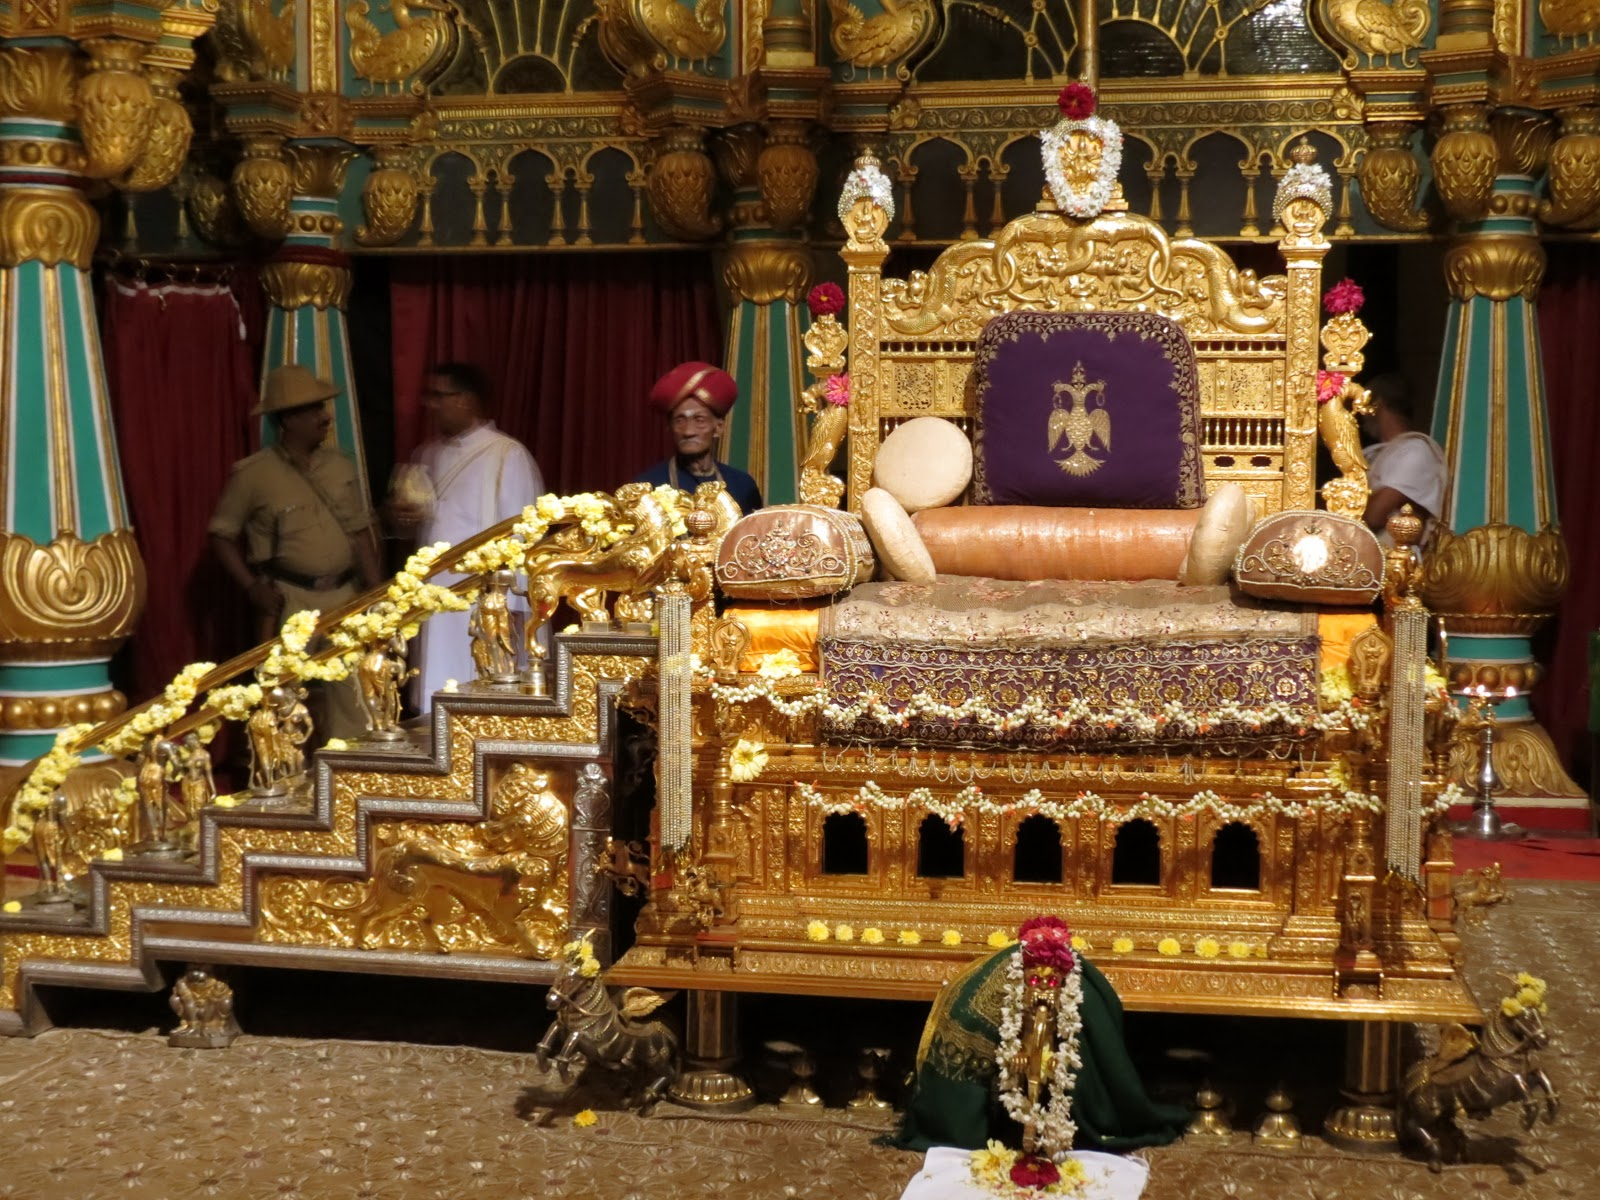 Dr S N Prasad Mysore India In And Around The Fabulous Palace Some Glimpses Of Nocturnal Grandeur During Dasara 2012